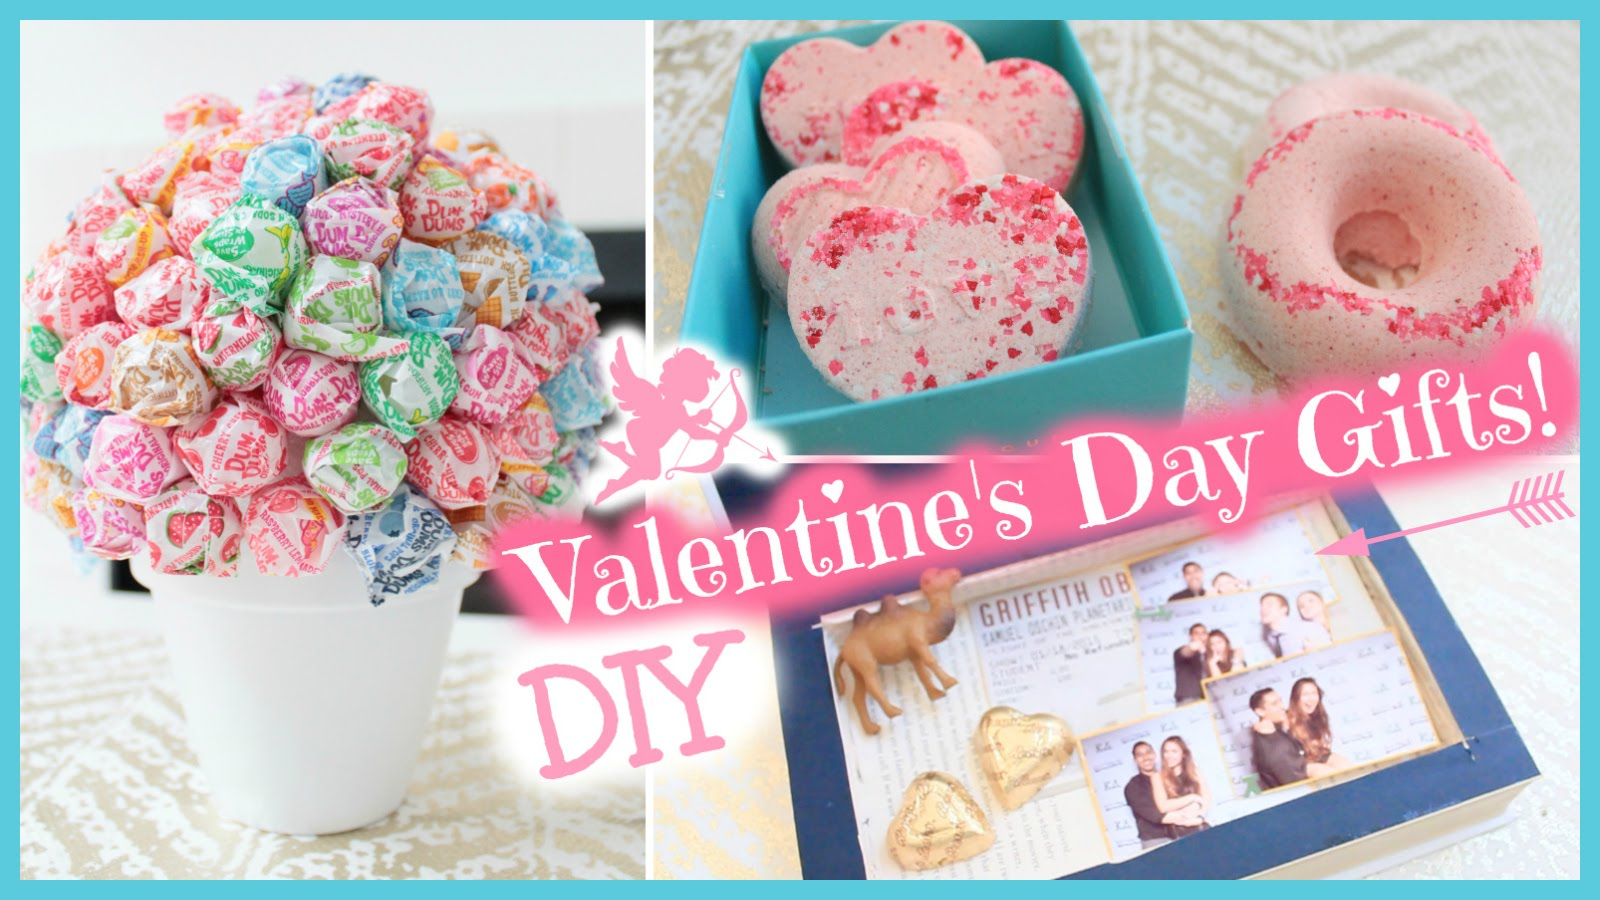 Diy valentine 39 s day gift ideas 2015 everything 4 christmas for Valentines day trip ideas